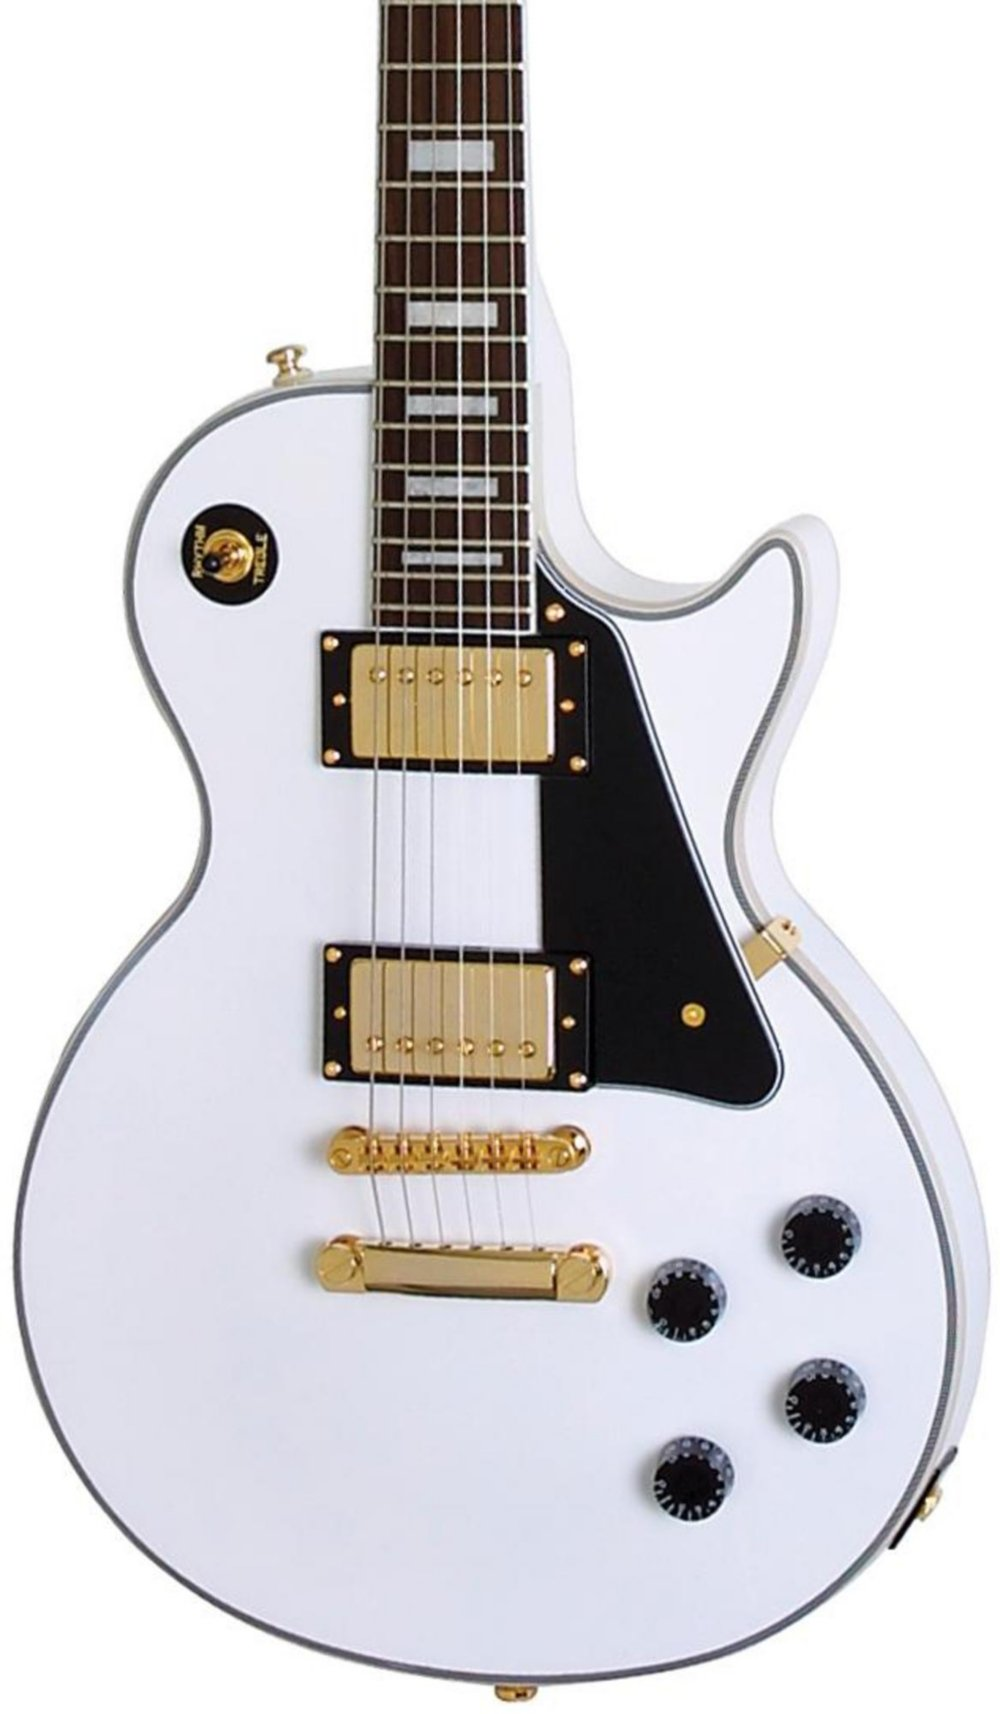 Cheap Epiphone Les Paul CUSTOM PRO Electric Guitar with Coil Tapping Alpine White Black Friday & Cyber Monday 2019